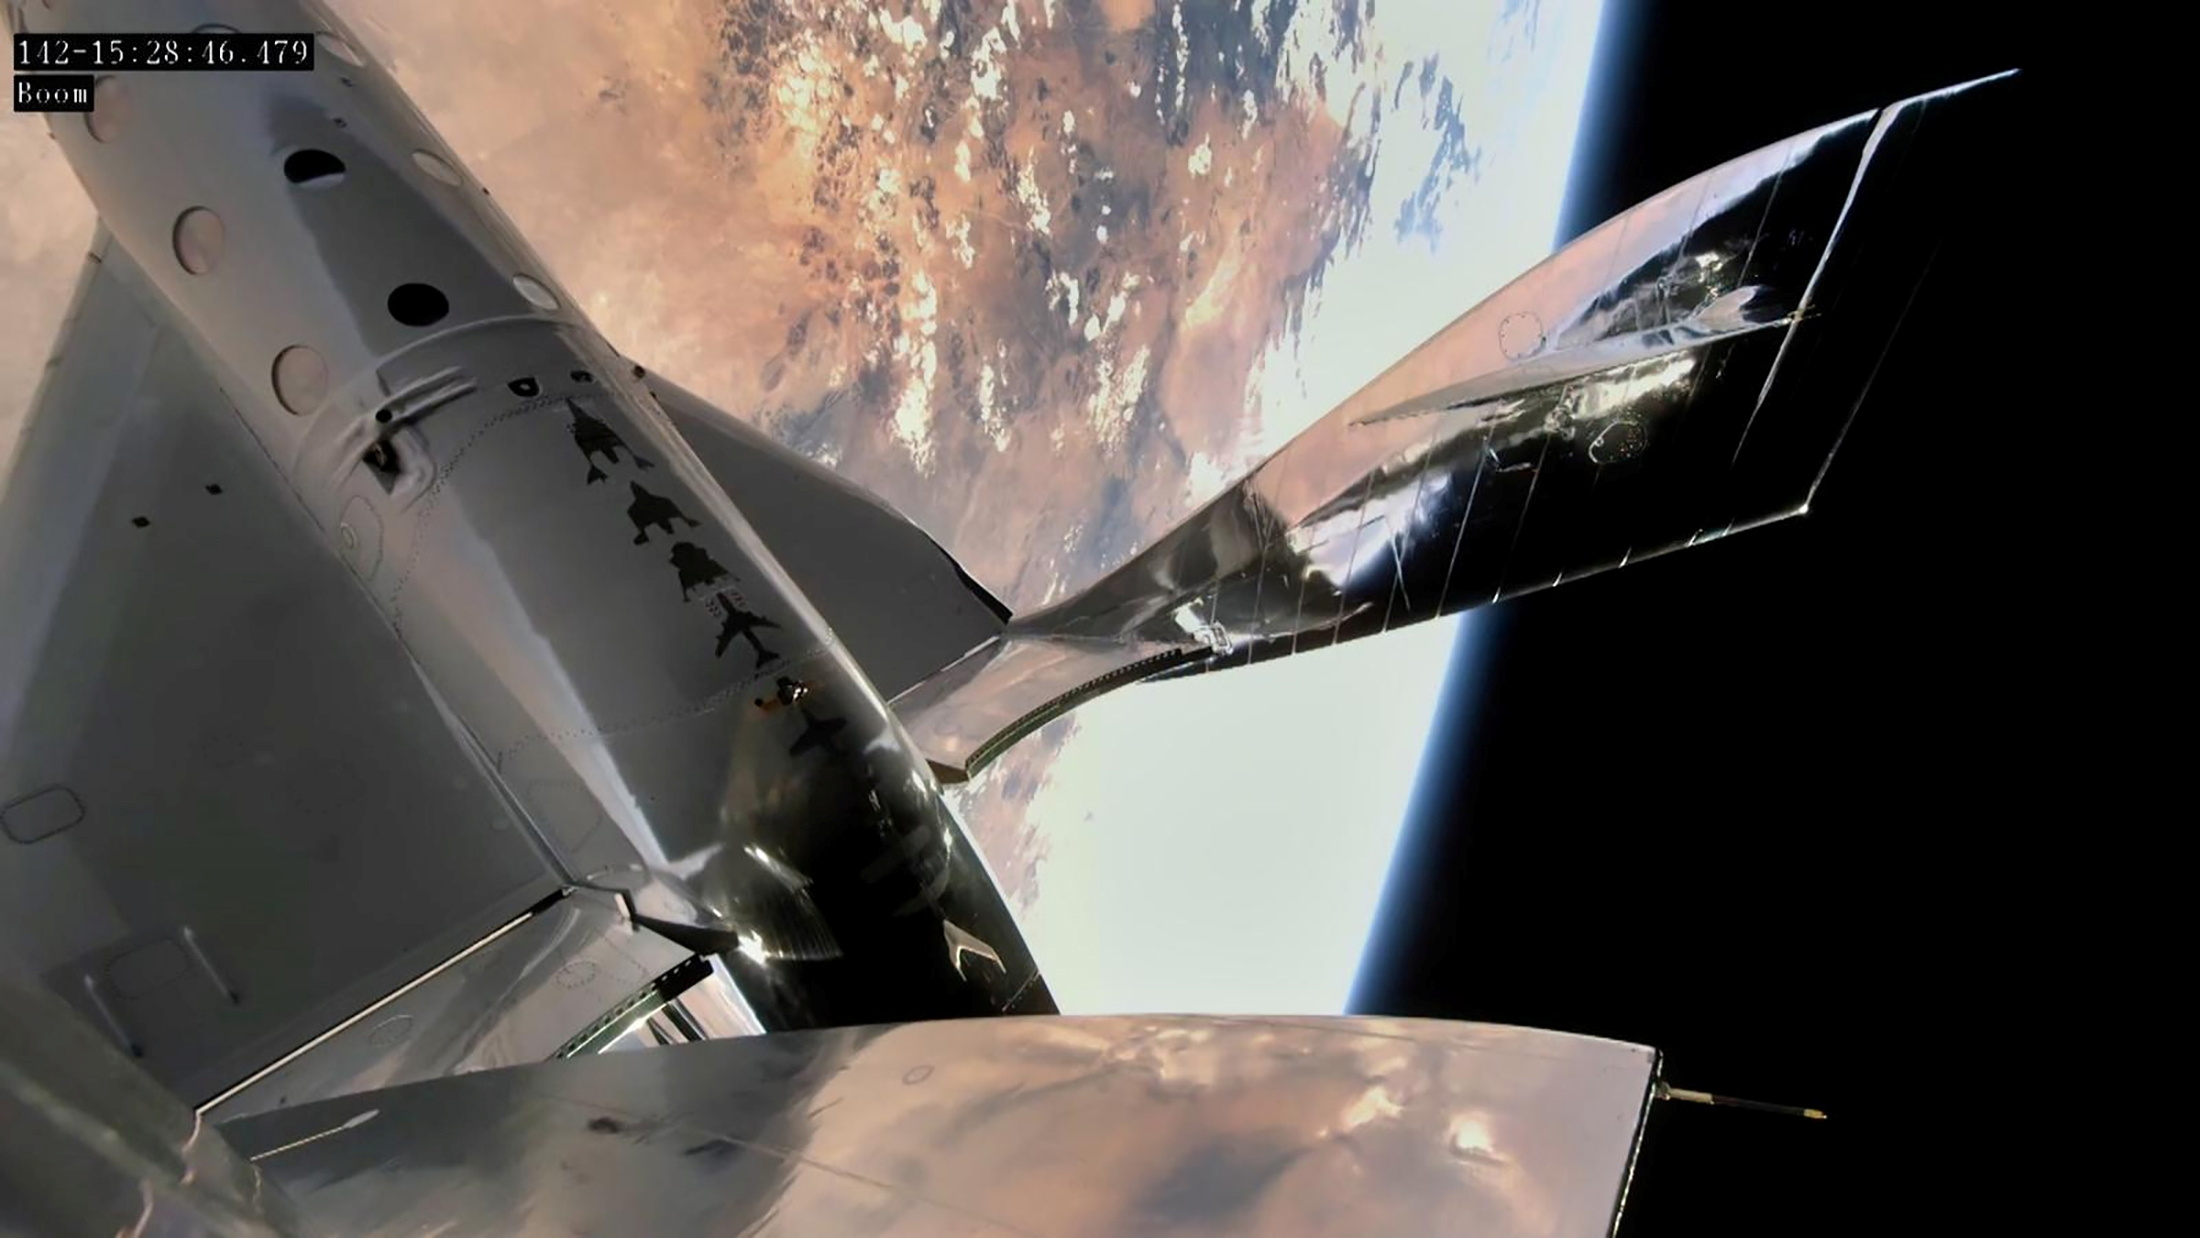 Virgin Galactic's VSS Unity, piloted by CJ Sturckow and Dave Mackay, is seen in a still image from video during its first manned spaceflight after being released from its mothership, VMS Eve, from Spaceport America, New Mexico, U.S. May 22, 2021.  Virgin Galactic/Handout via REUTERS. /File Photo  - U2H6GM7S55OLZB7JJSH6PH7MOY - Virgin Galactic to fly researcher to space for conducting experiments